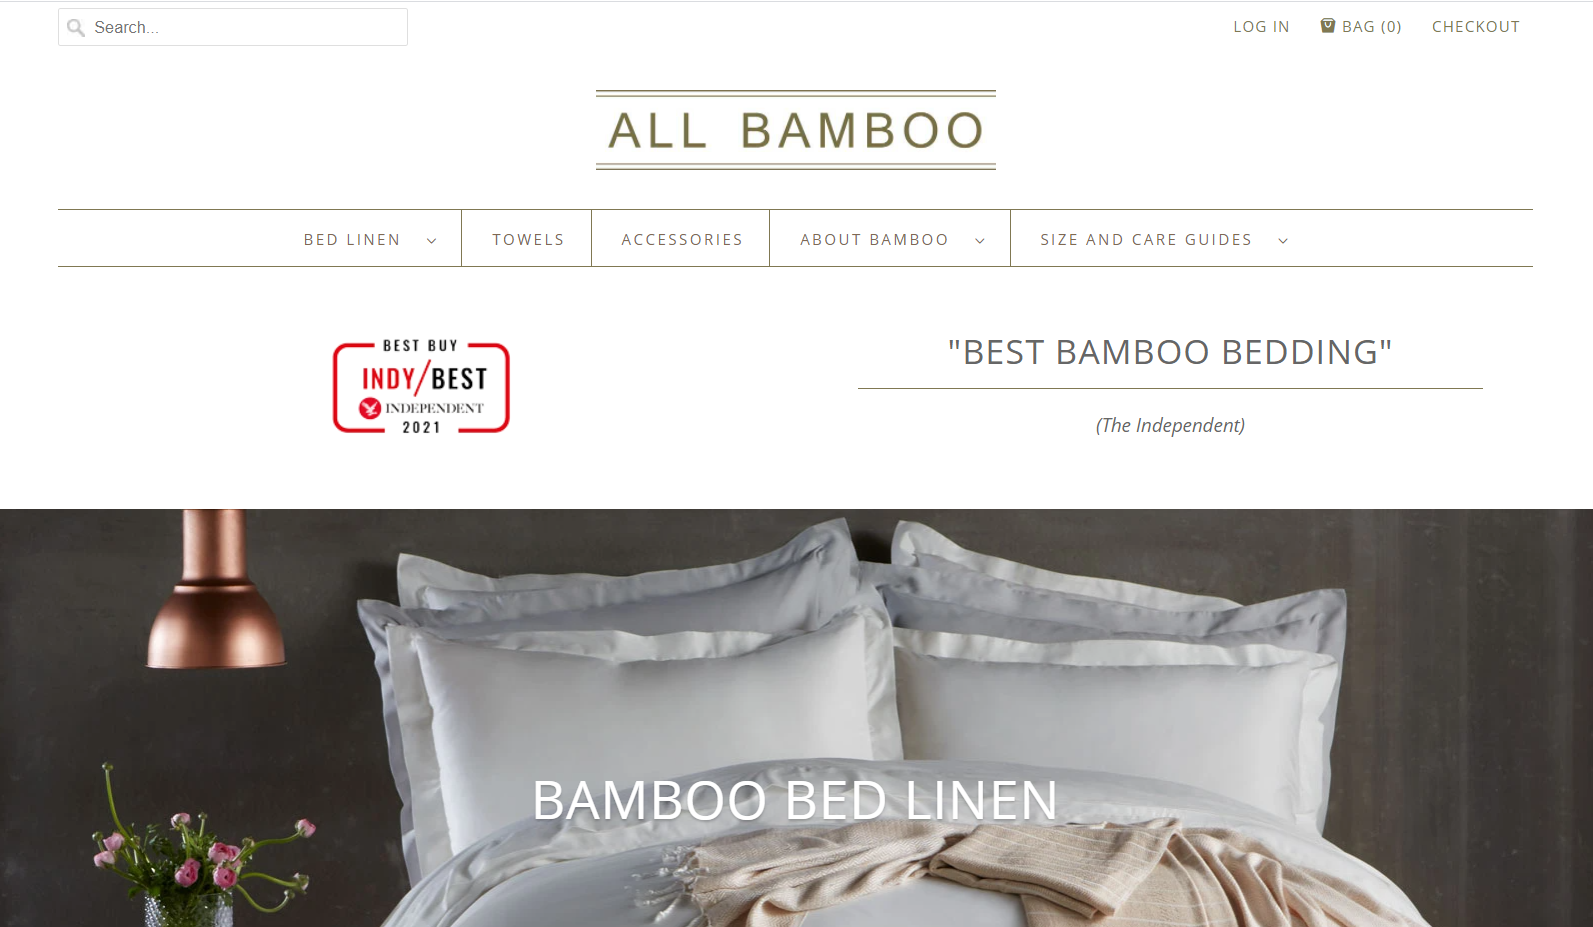 ALL BAMBOO - LANDING PAGE REVIEW